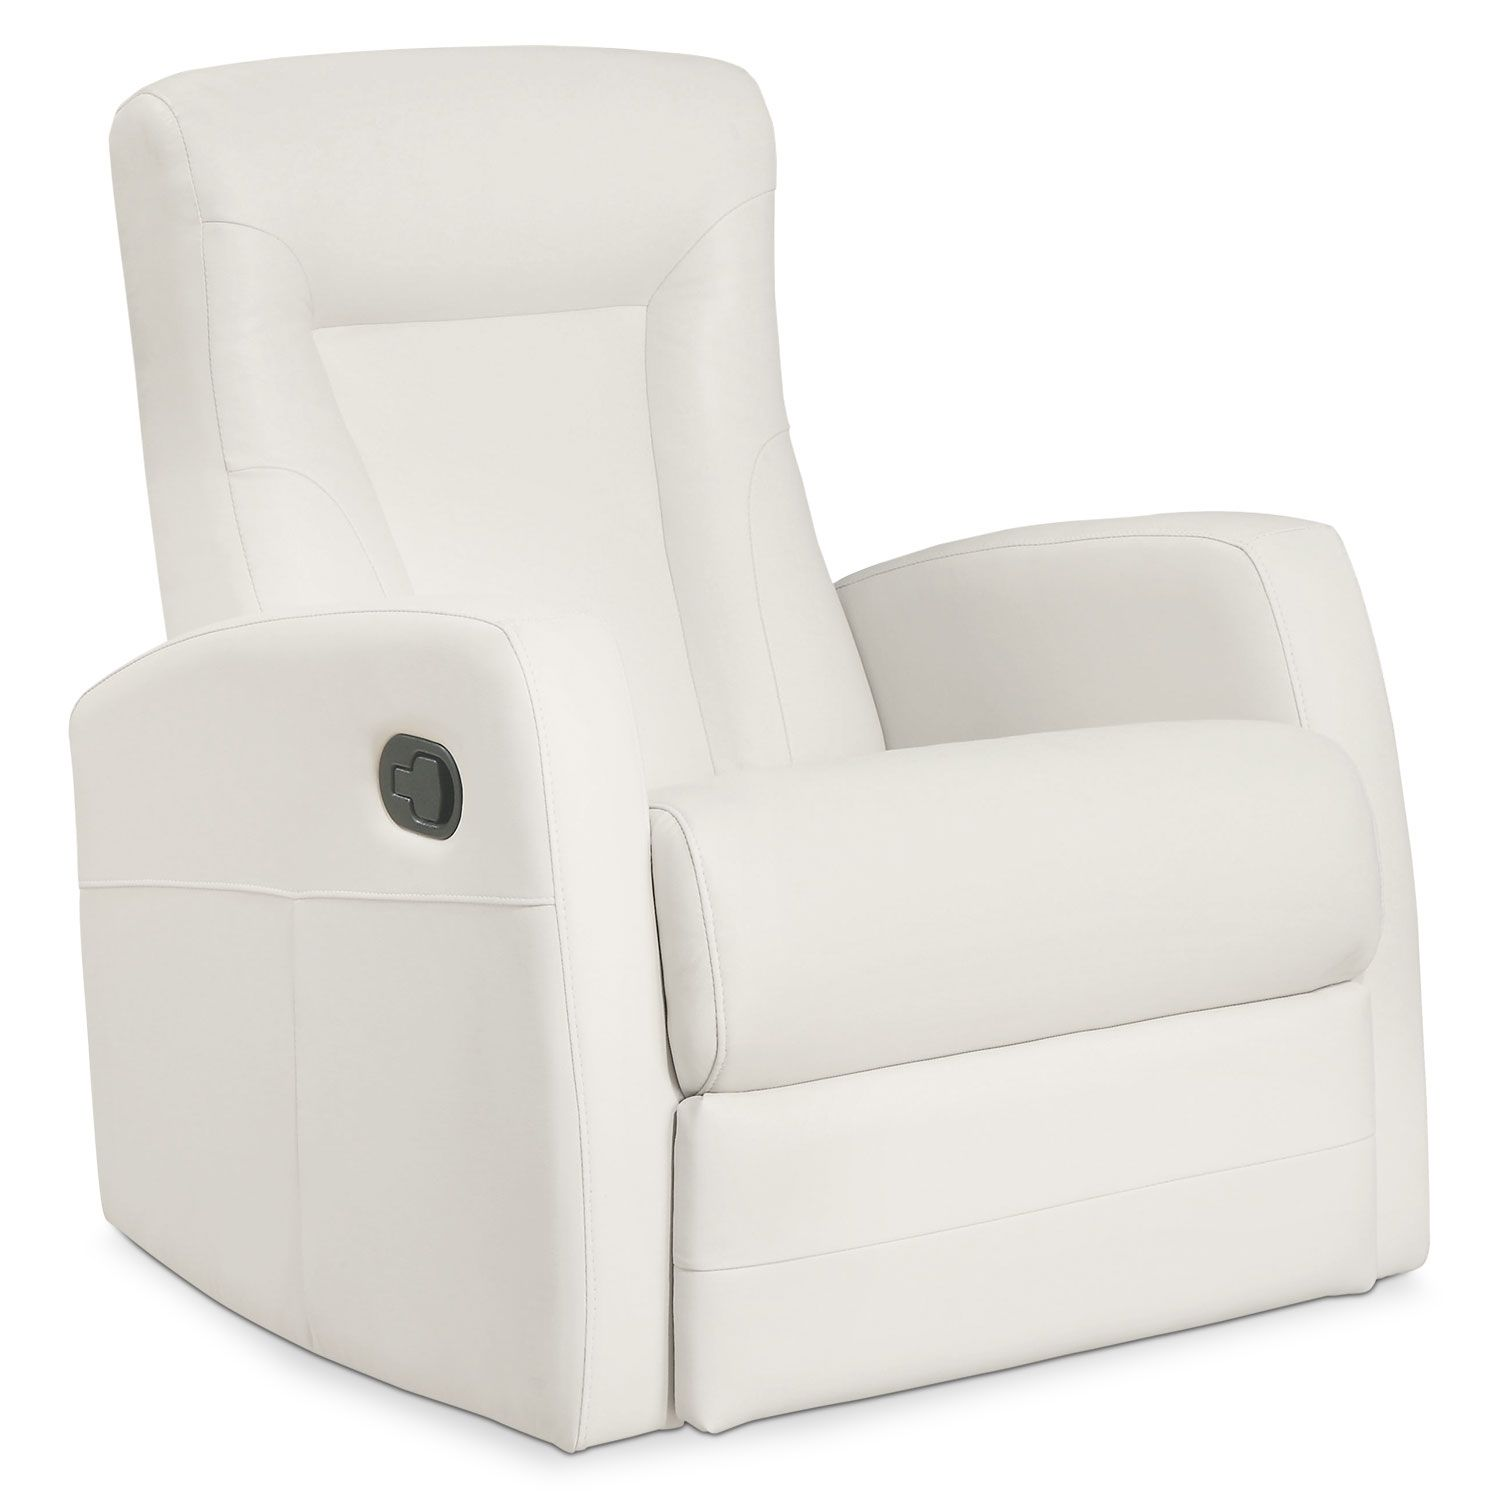 Living Room Furniture   Molly Bonded Leather Swivel Recliner   Ivory $519  The Brick